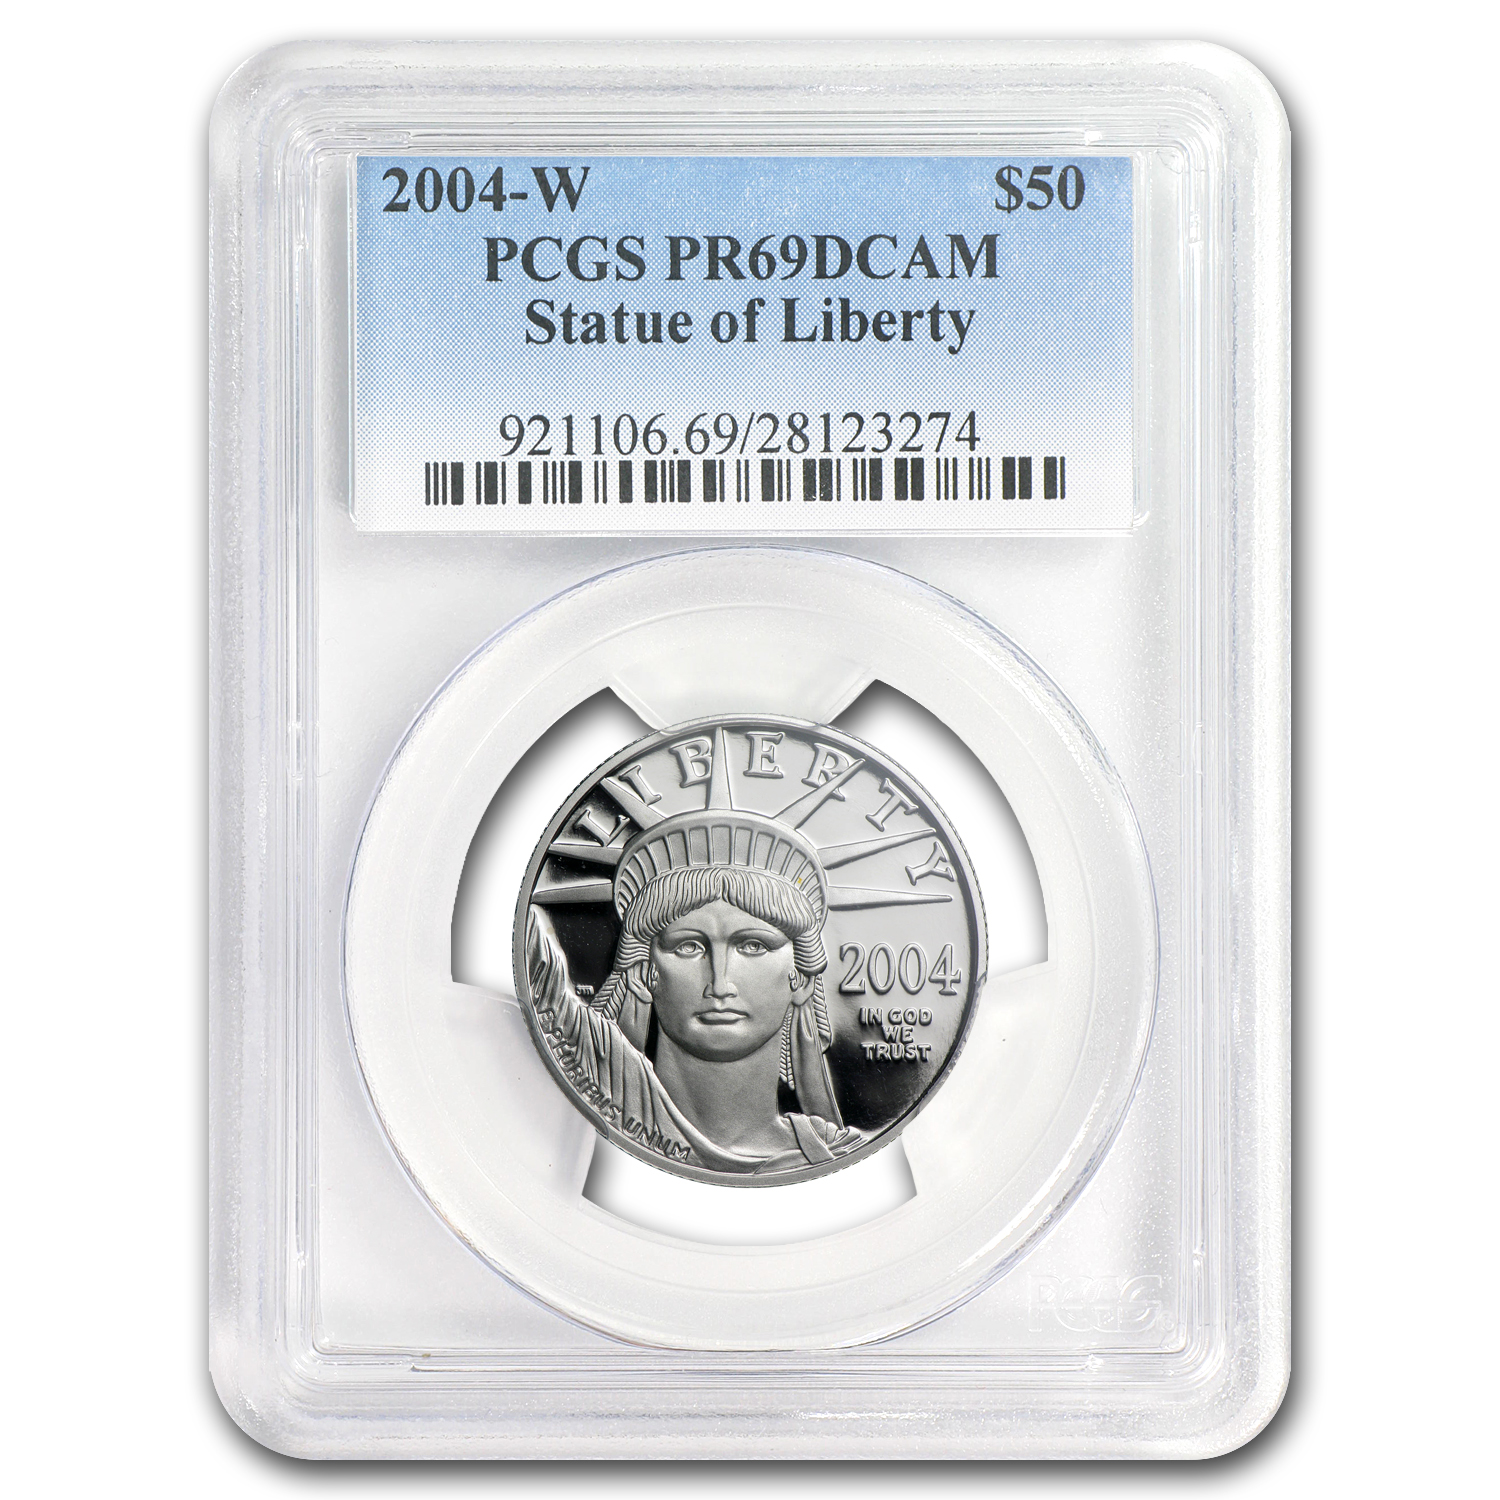 2004-W 1/2 oz Proof Platinum American Eagle PR-69 PCGS